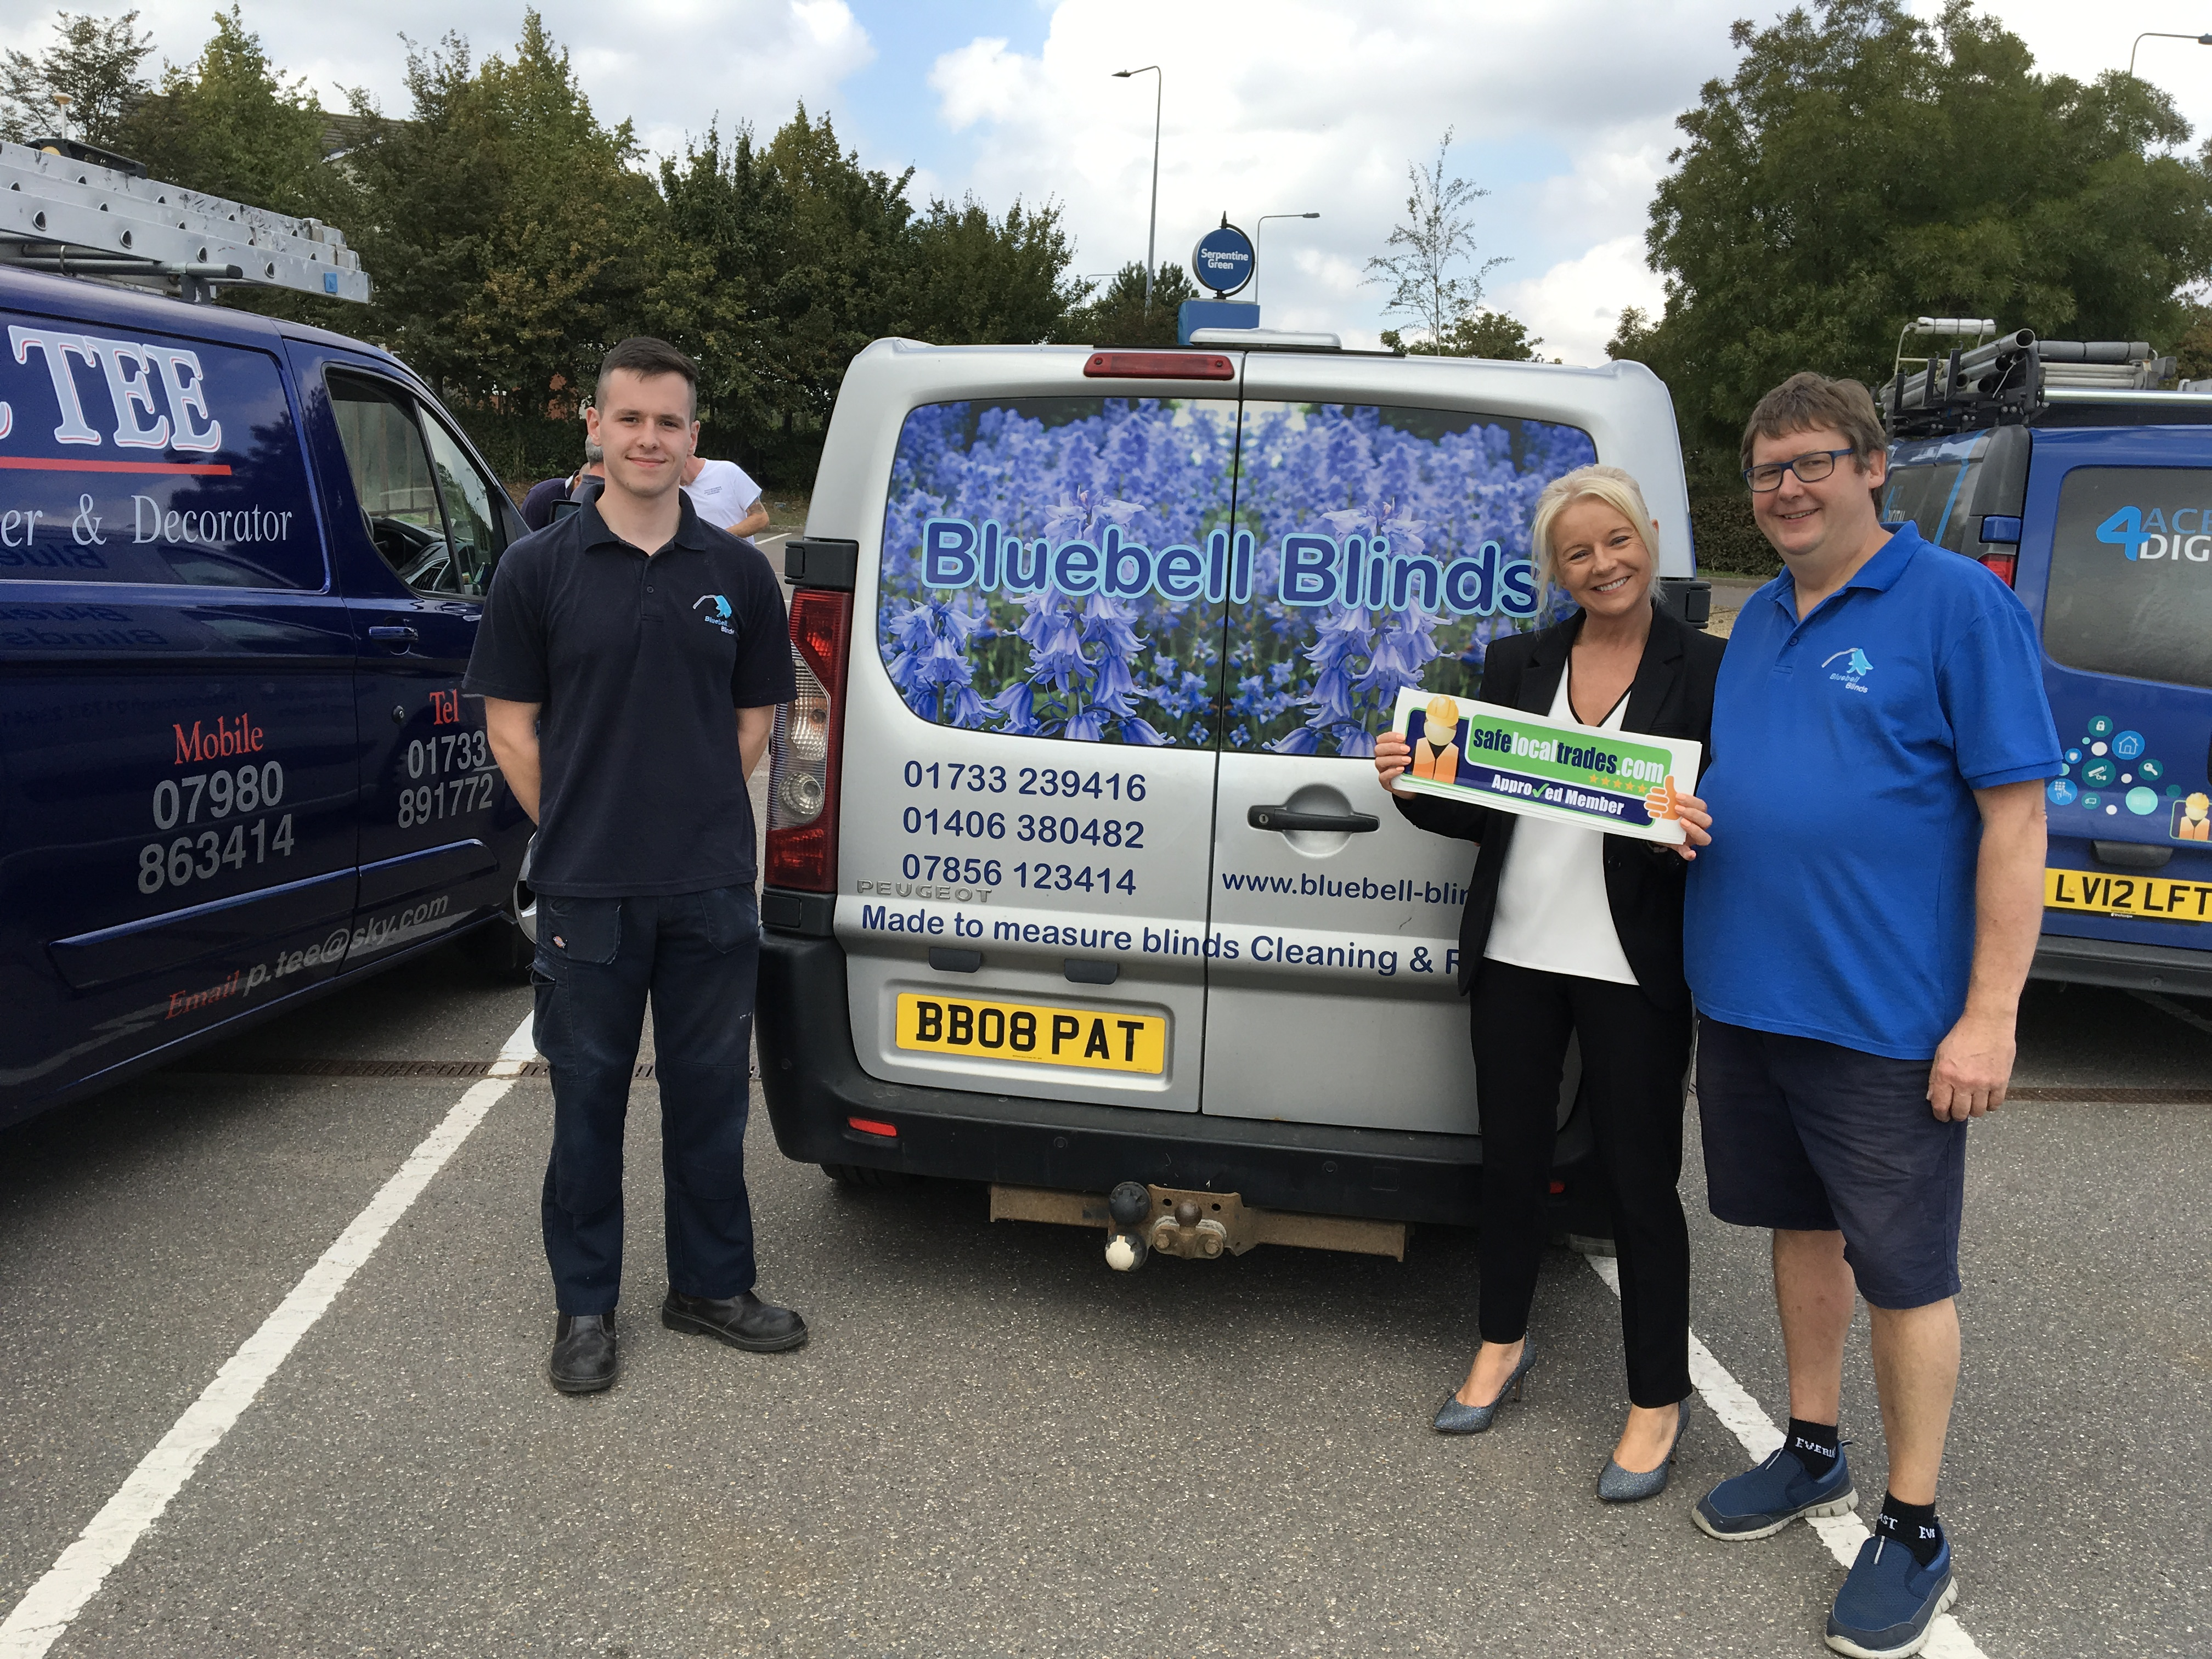 Pat Barker of Bluebell Blinds in Peterborough & Spalding